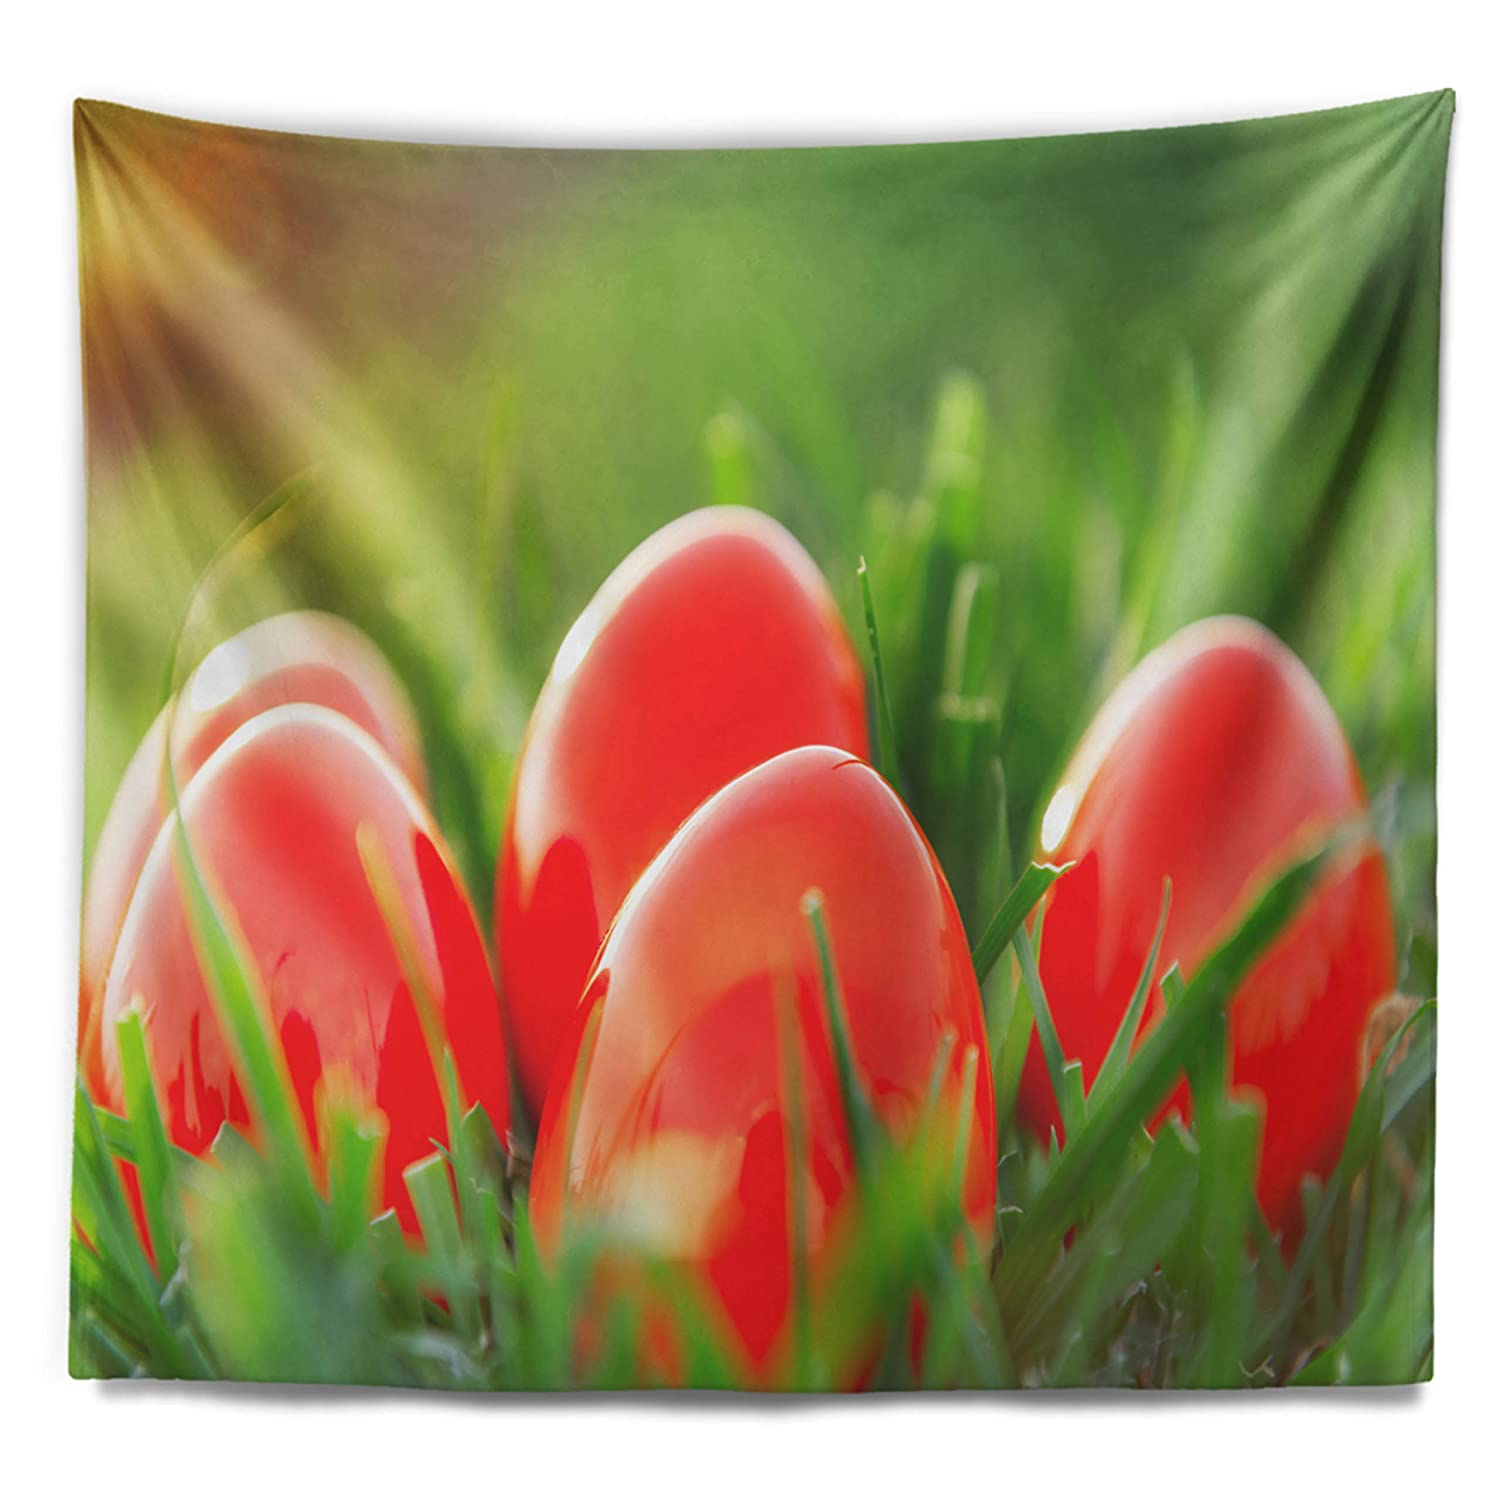 80 x 68 Created On Lightweight Polyester Fabric Designart TAP9624-80-68  Red Easter Eggs in Green Grass Landscape Photography Blanket D/écor Art for Home and Office Wall Tapestry x Large